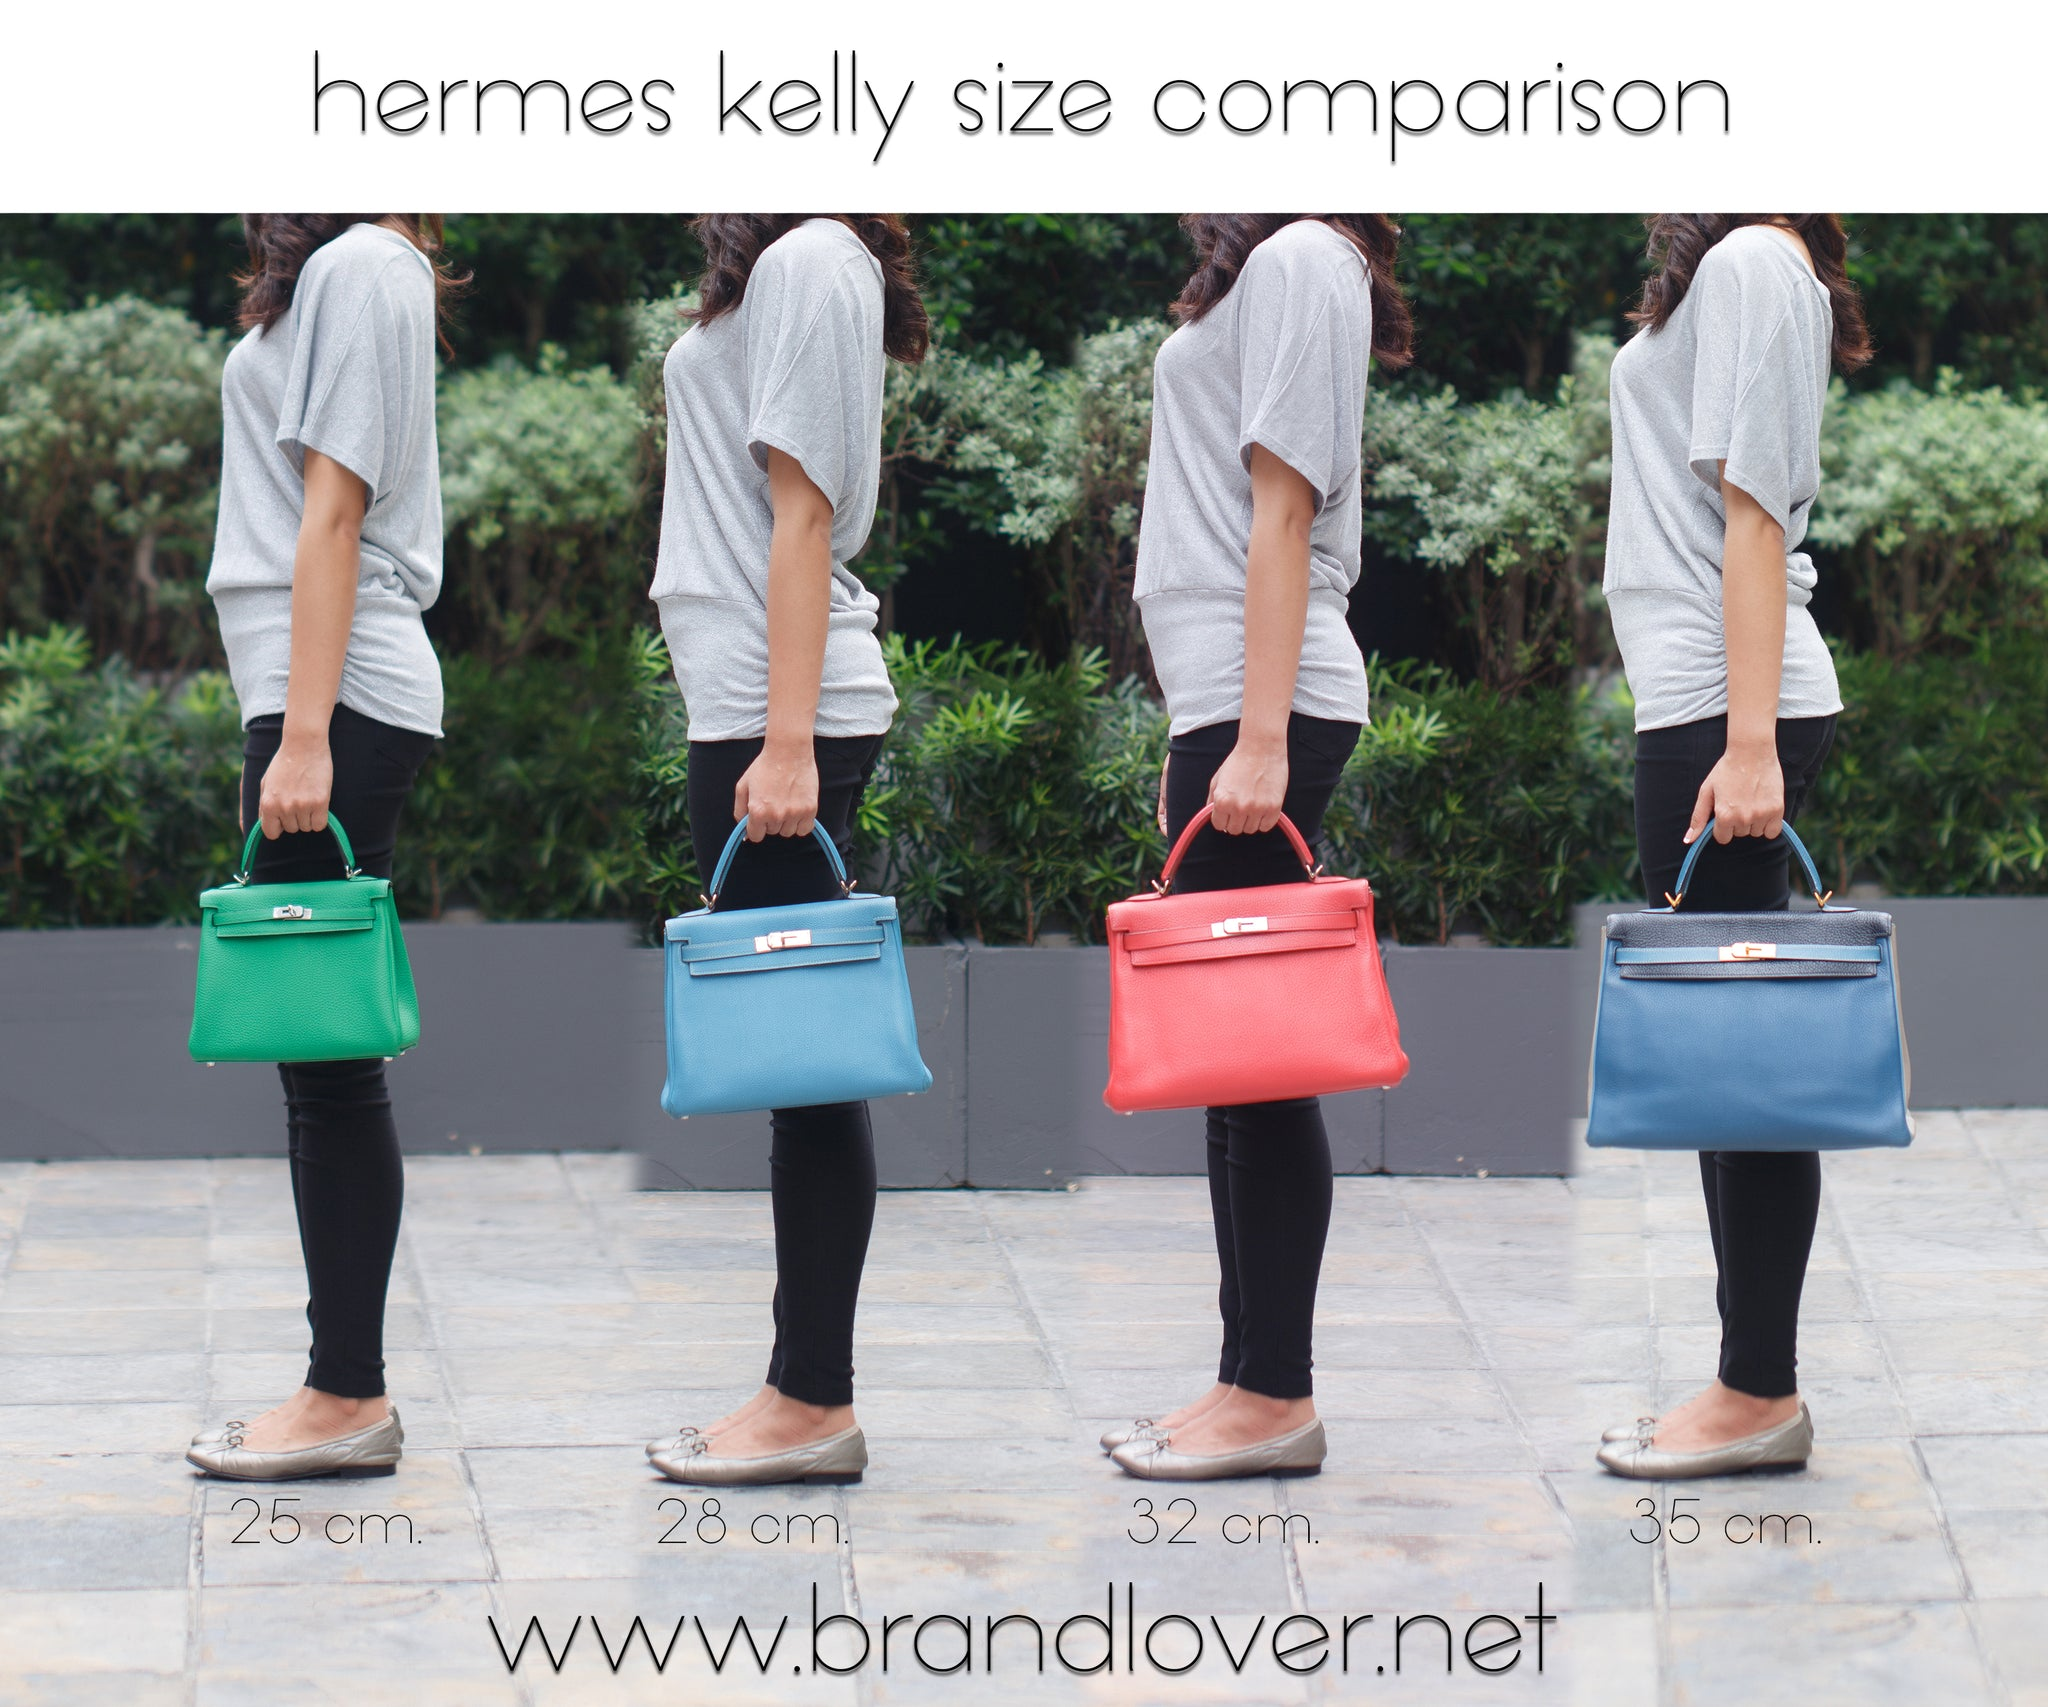 d88f60cae3 Tagged with  hermes kelly kelly comparision kelly size